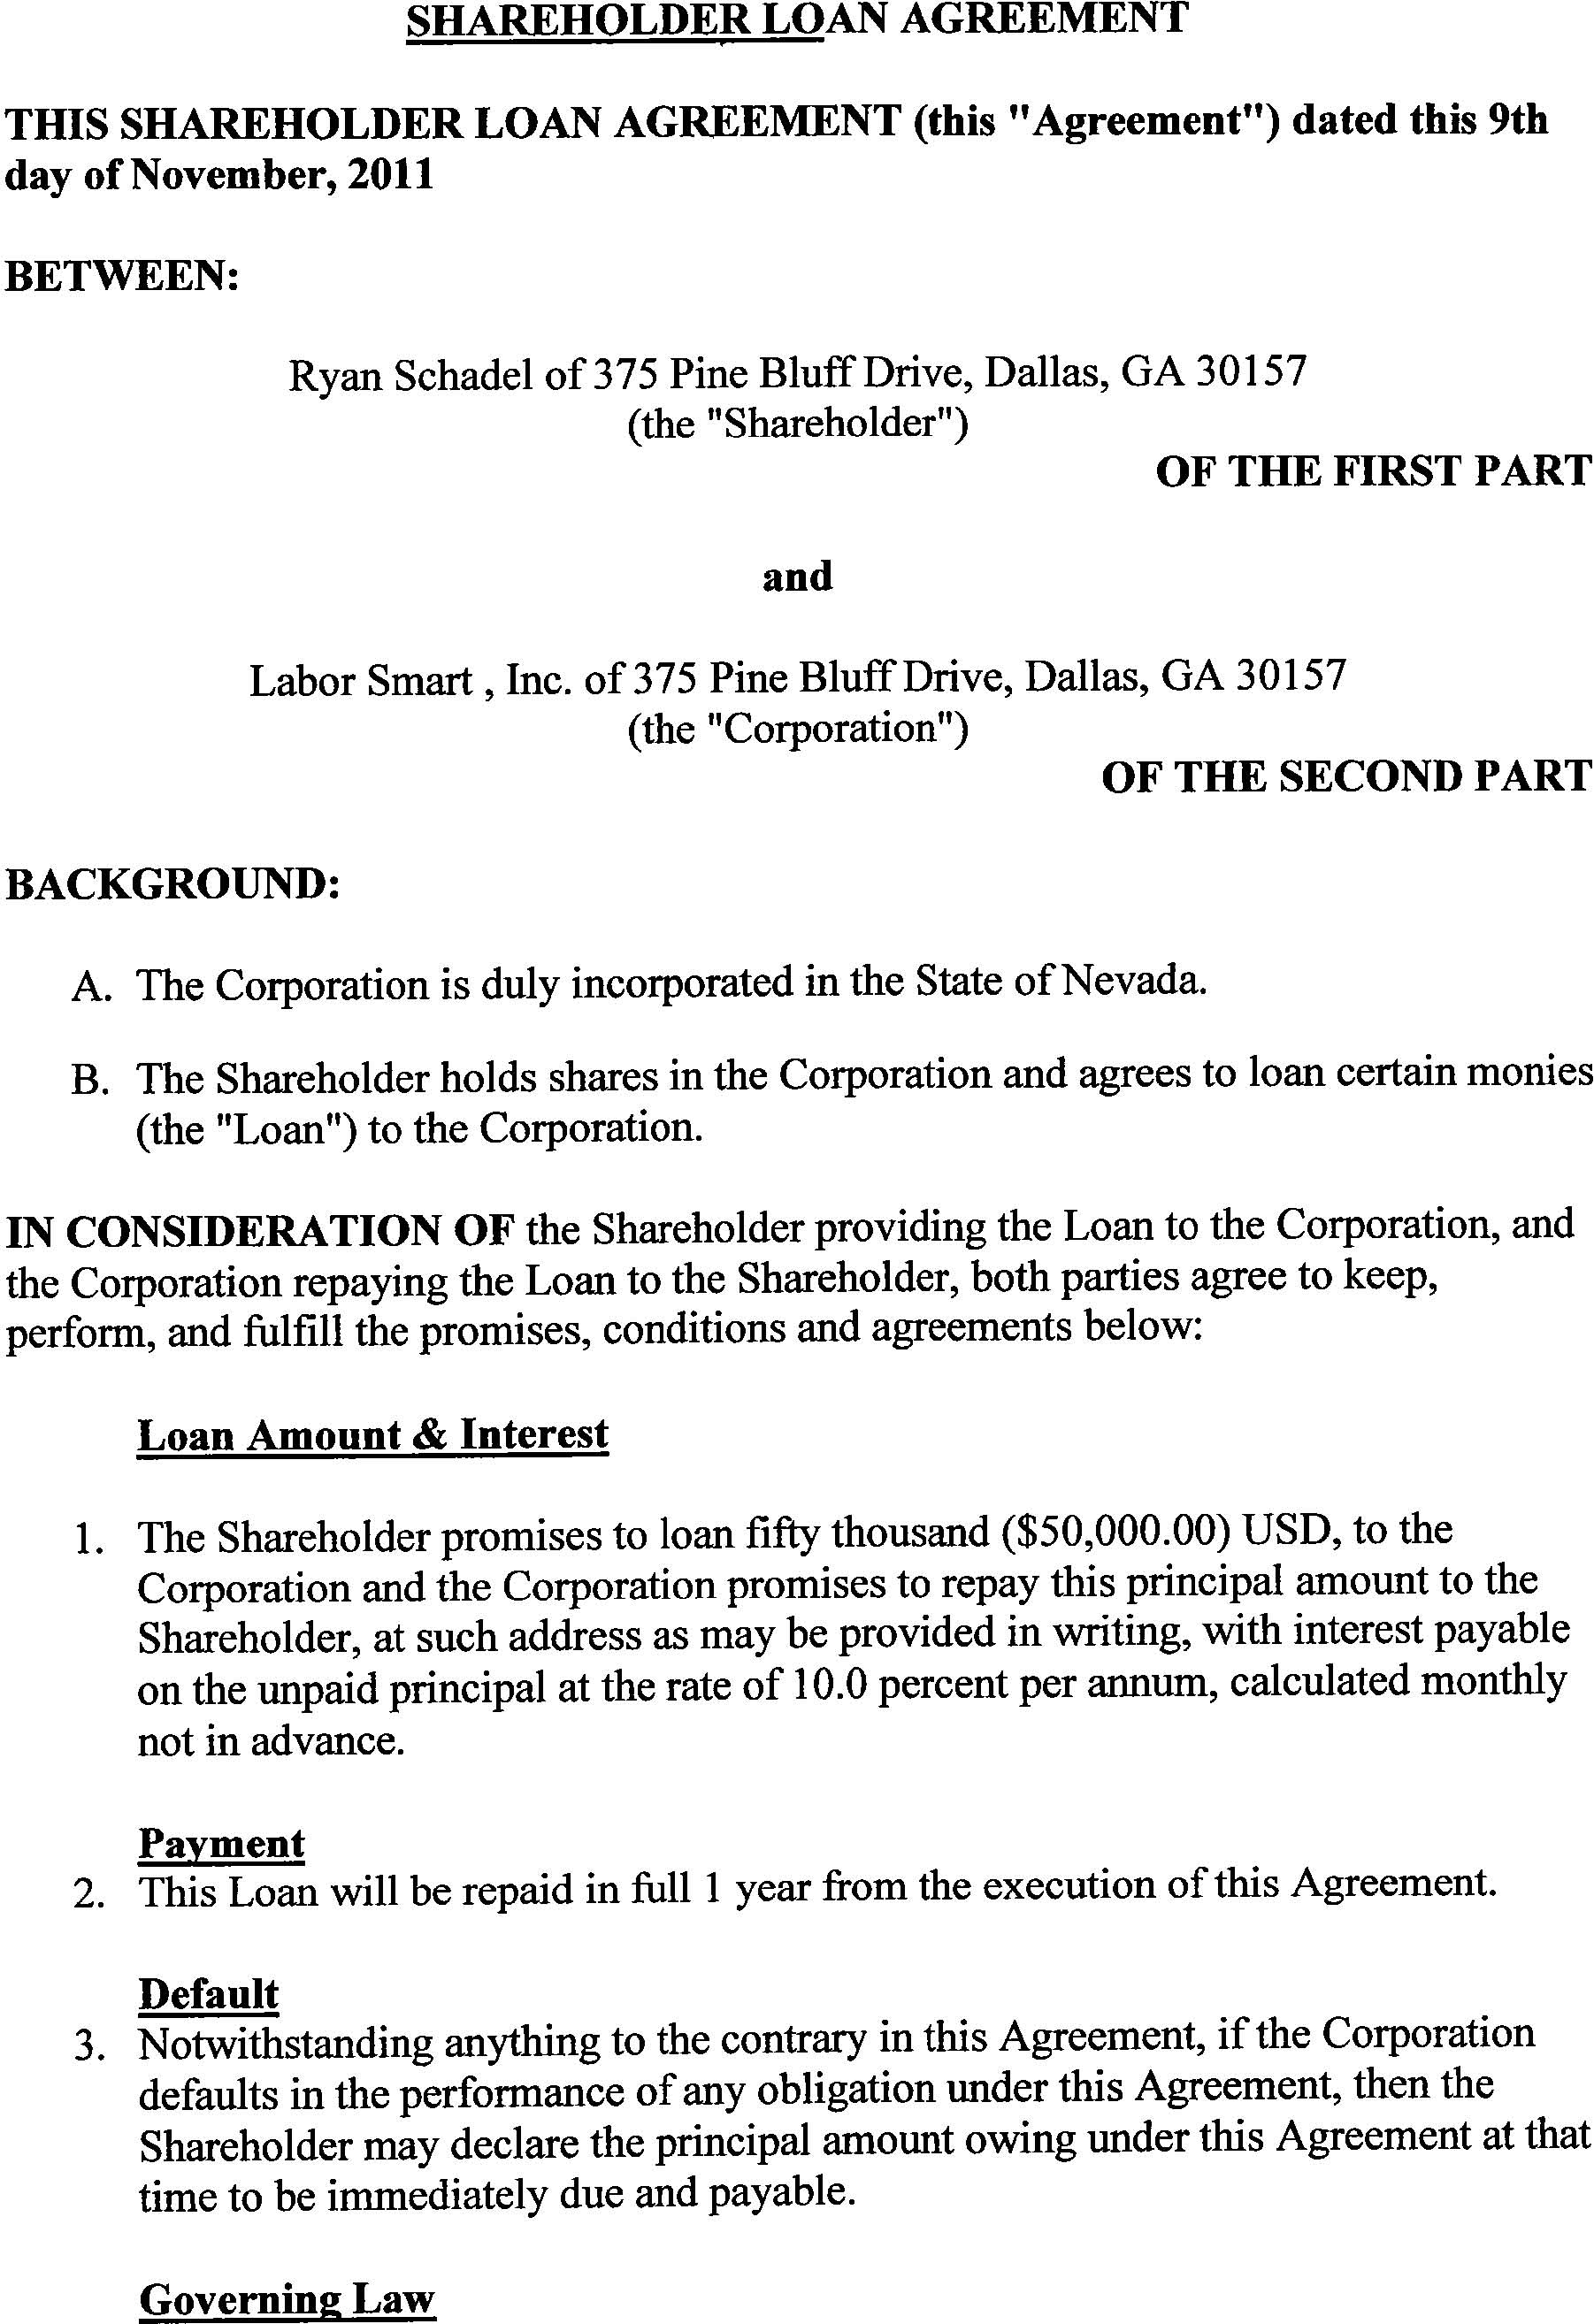 directors loan to company agreement template - labor smart inc form s 1 a ex 10 1 shareholder